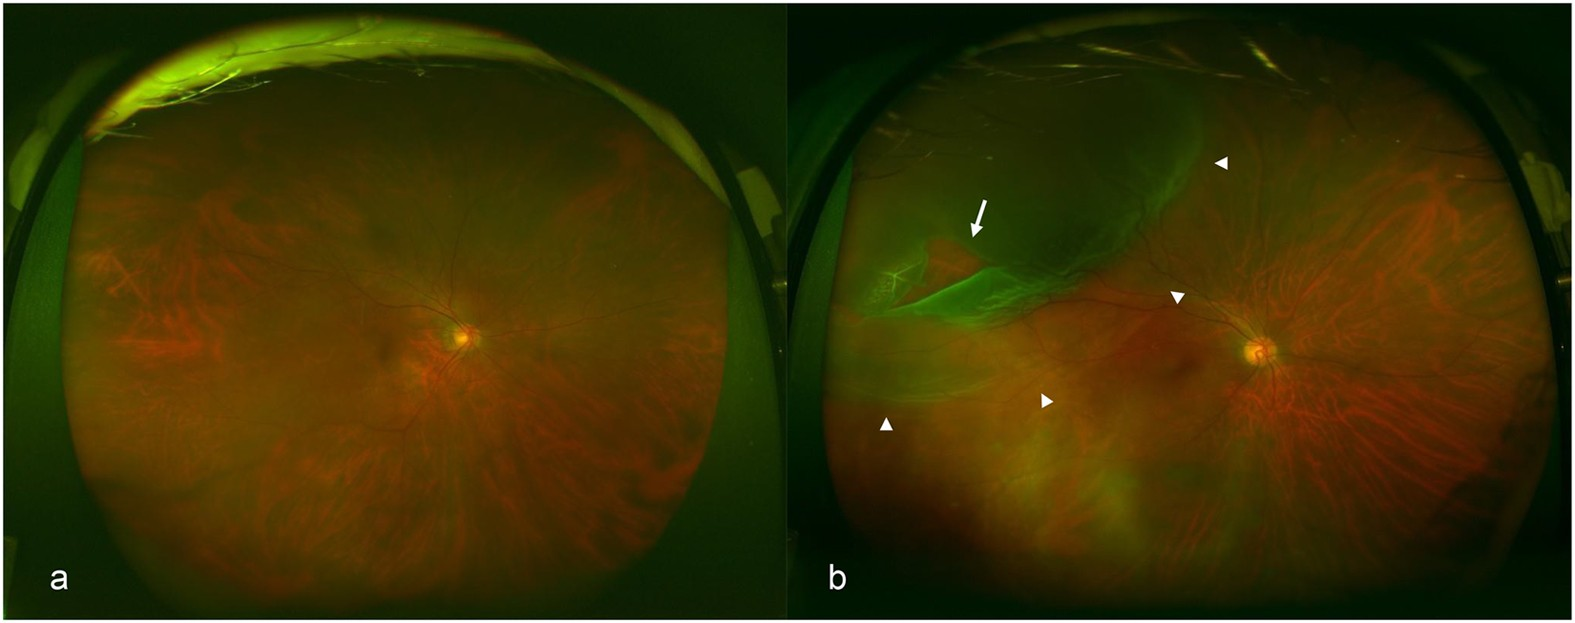 Accuracy Of Deep Learning A Machine Technology Using Ultra Wide Field Fundus Ophthalmoscopy For Detecting Rhegmatogenous Retinal Detachment